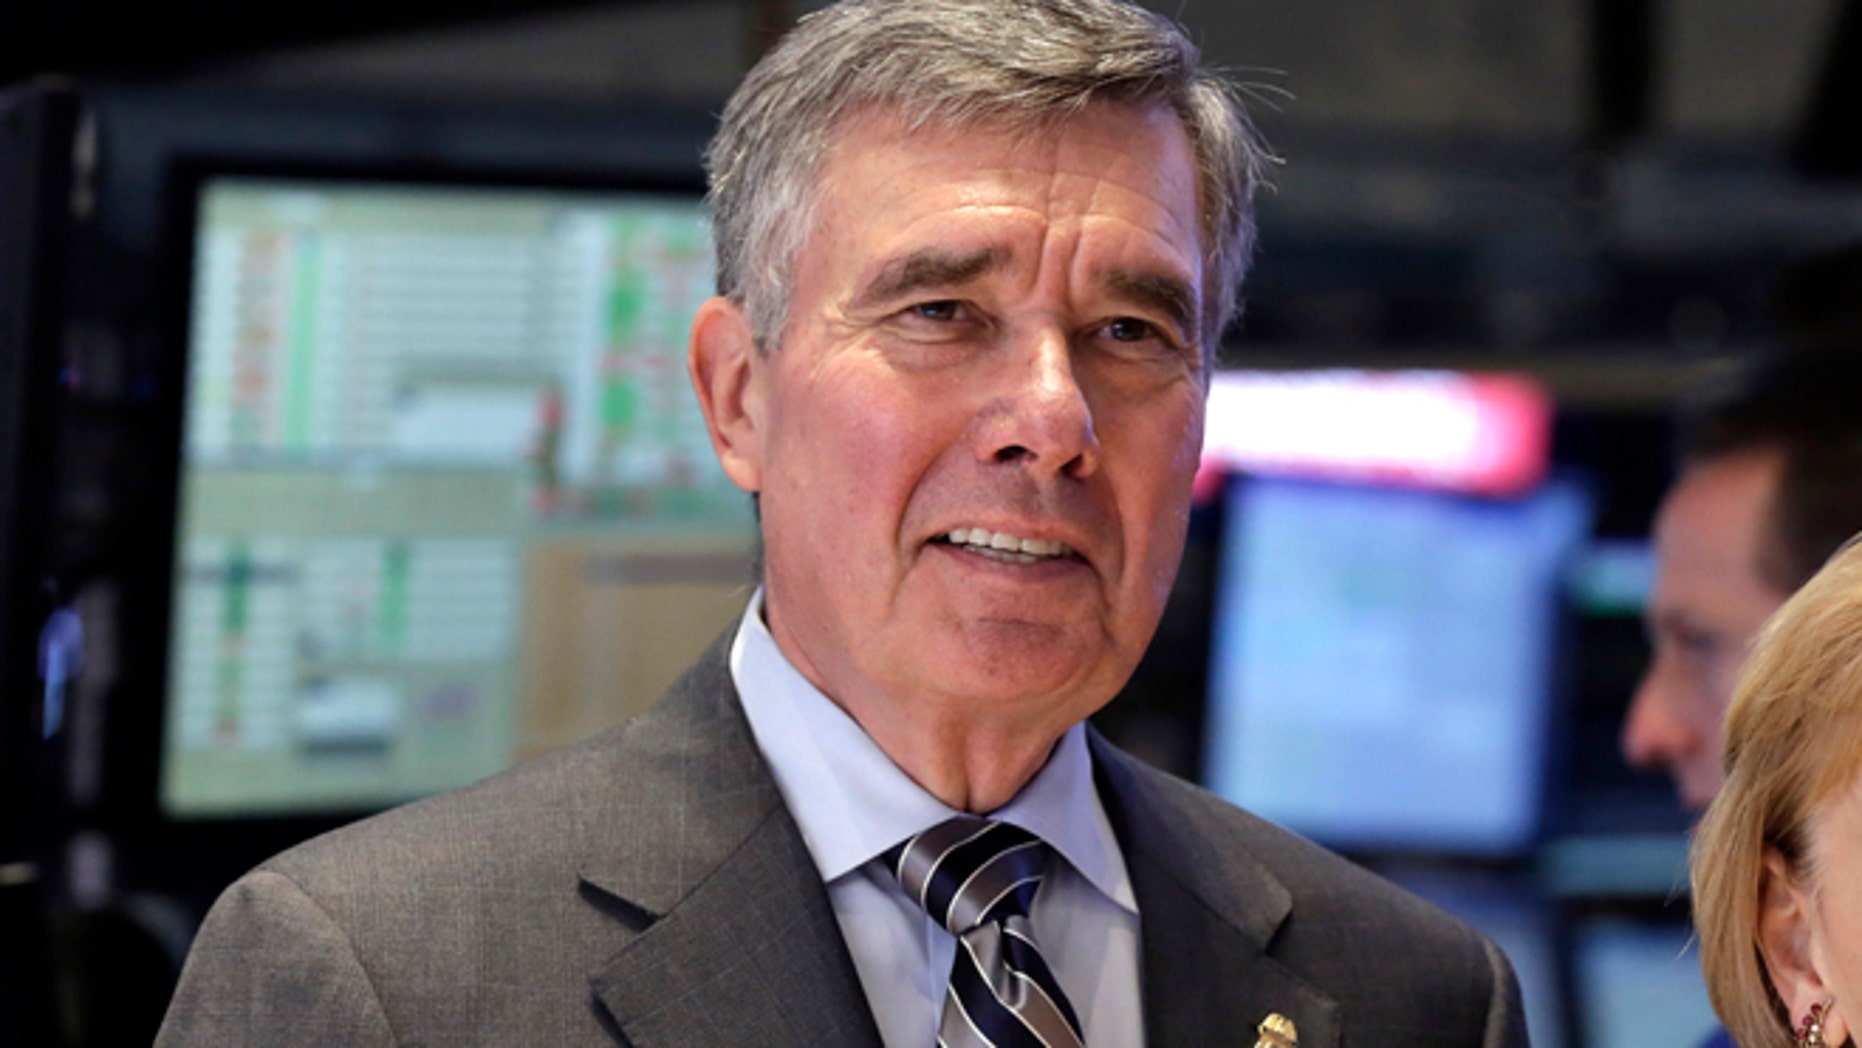 FILE - U.S. Customs and Border Protection Commissioner R. Gil Kerlikowske poses for photos after ringing the New York Stock Exchange closing bell, Tuesday, Aug. 5, 2014 file photo. Kerlikowske scheduled a news conference Thursday Sept. 18, 2014 in Washington to discuss what his office said were âdevelopments toward CBPâs commitment to increase transparency and accountability.â (AP Photo/Richard Drew, File)